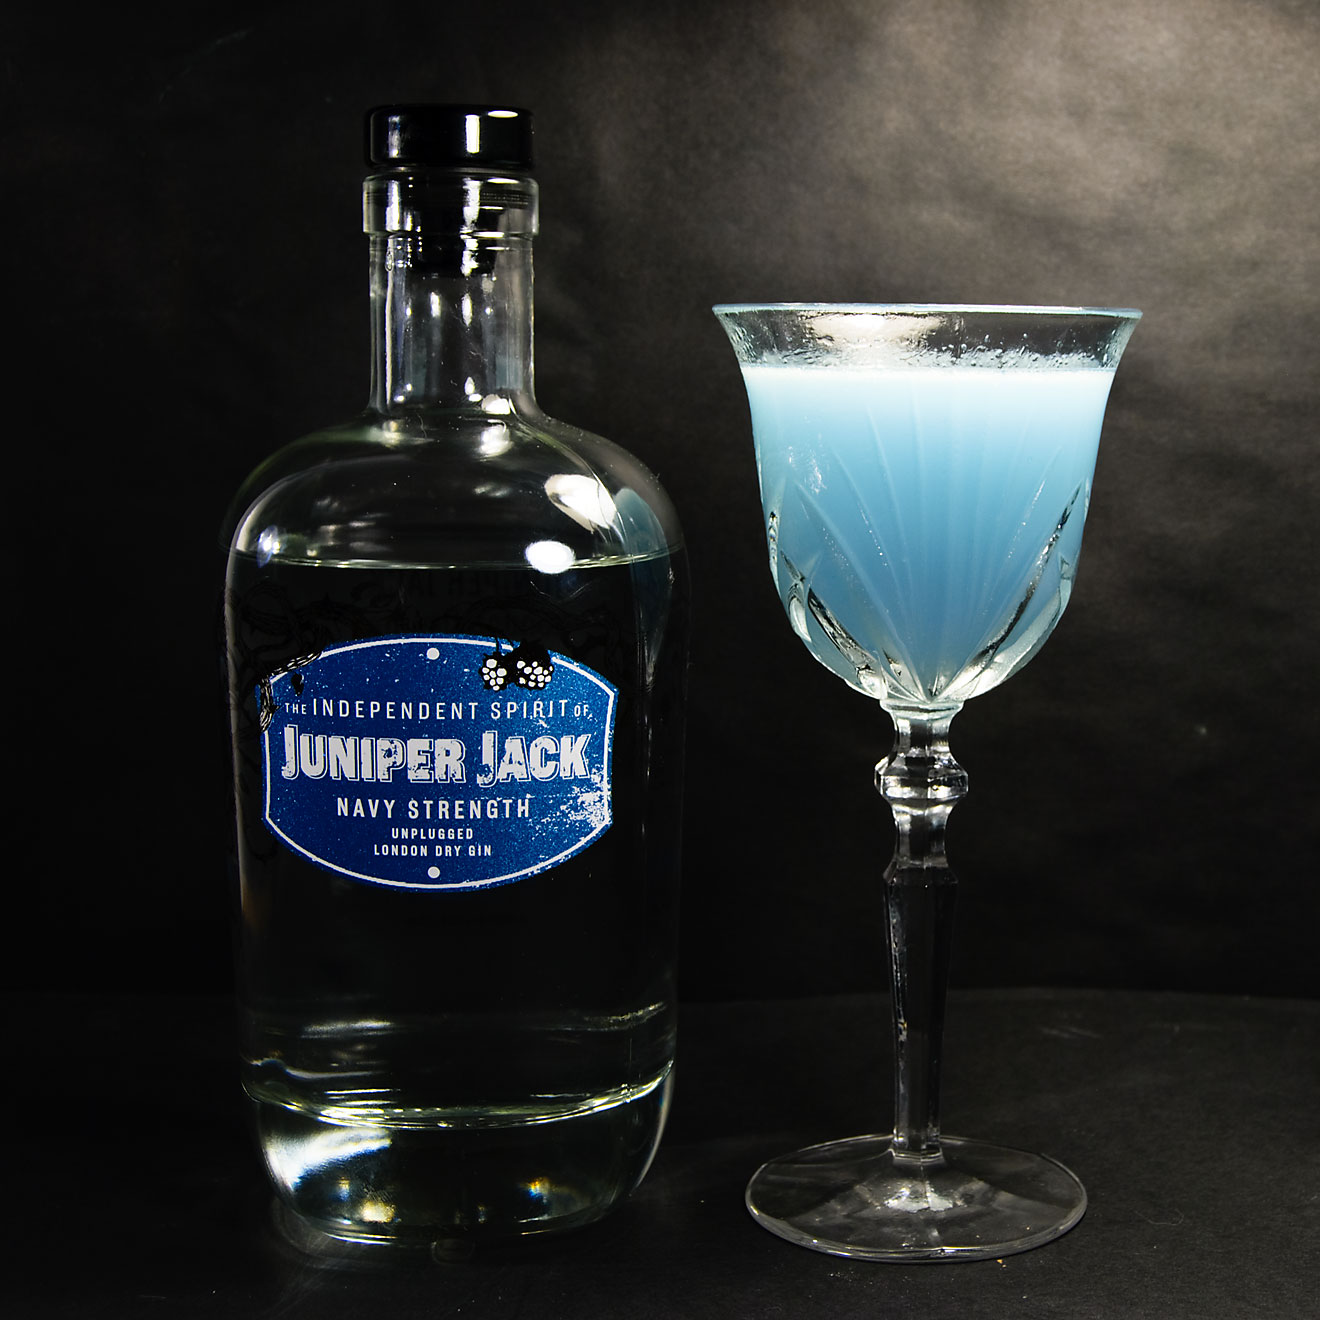 Juniper Jack Navy Strength in einem Aviation mit Maraschino und Violet Liqueur.